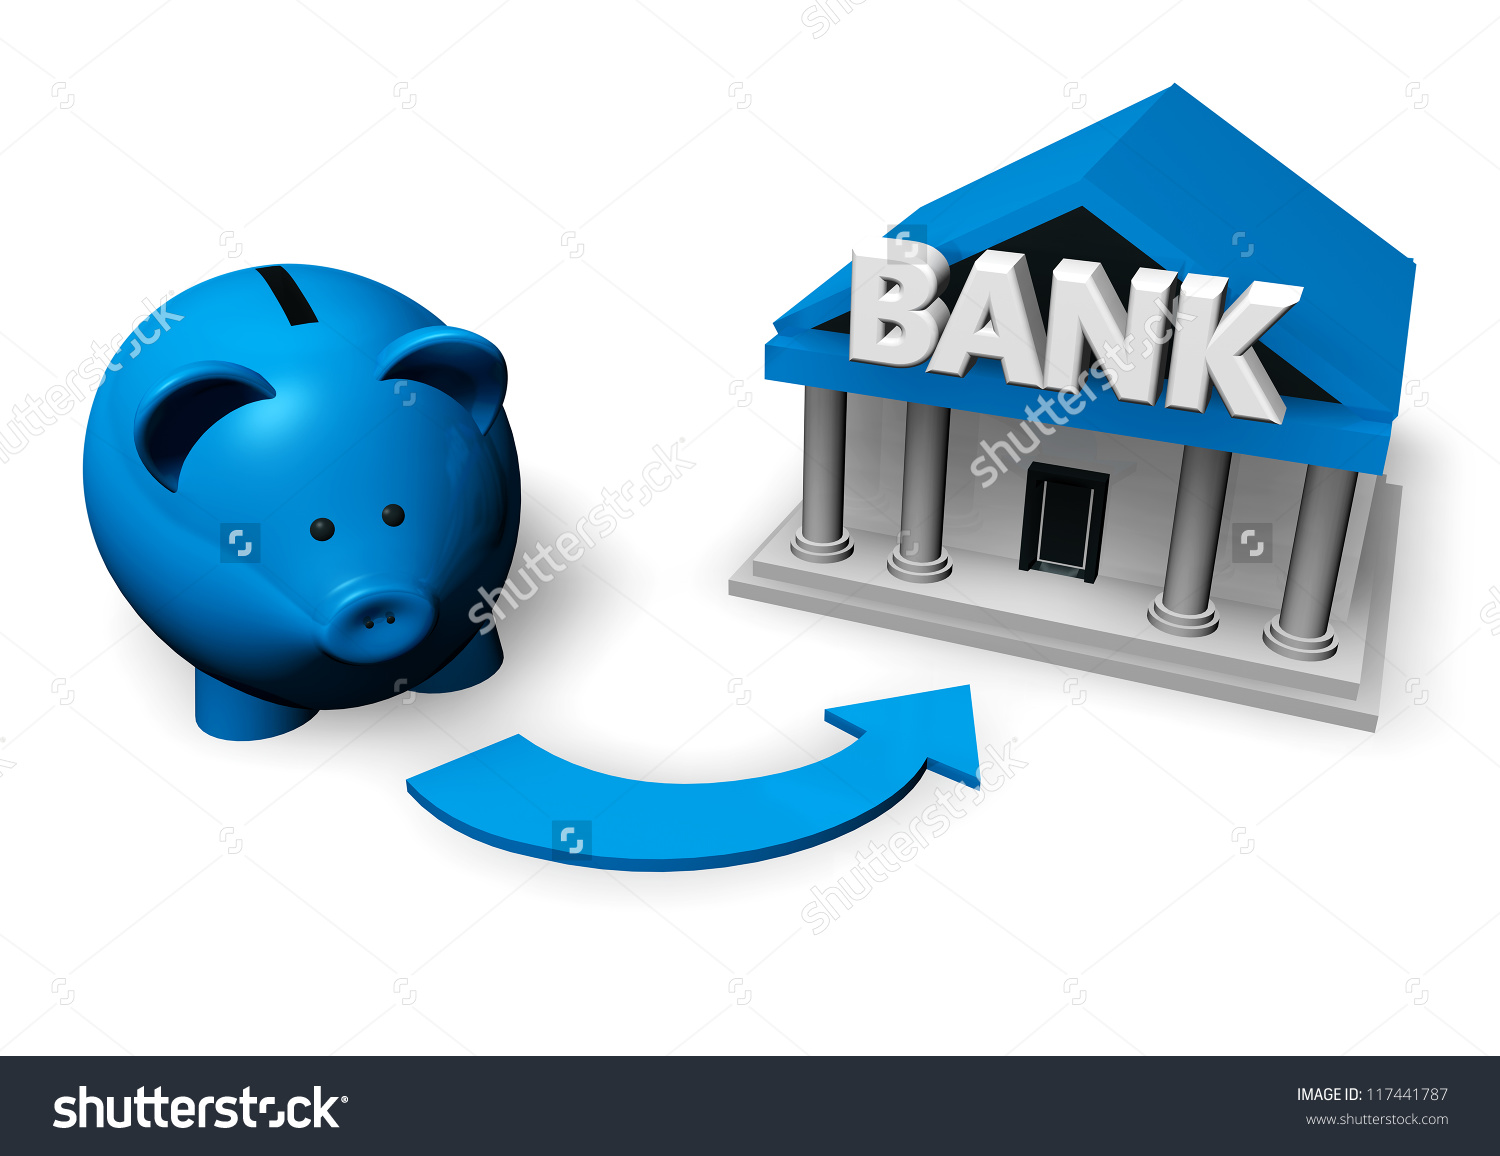 Bank account clipart clip library download Savings Investment Concept Blue Piggybank Moneybox Stock ... clip library download